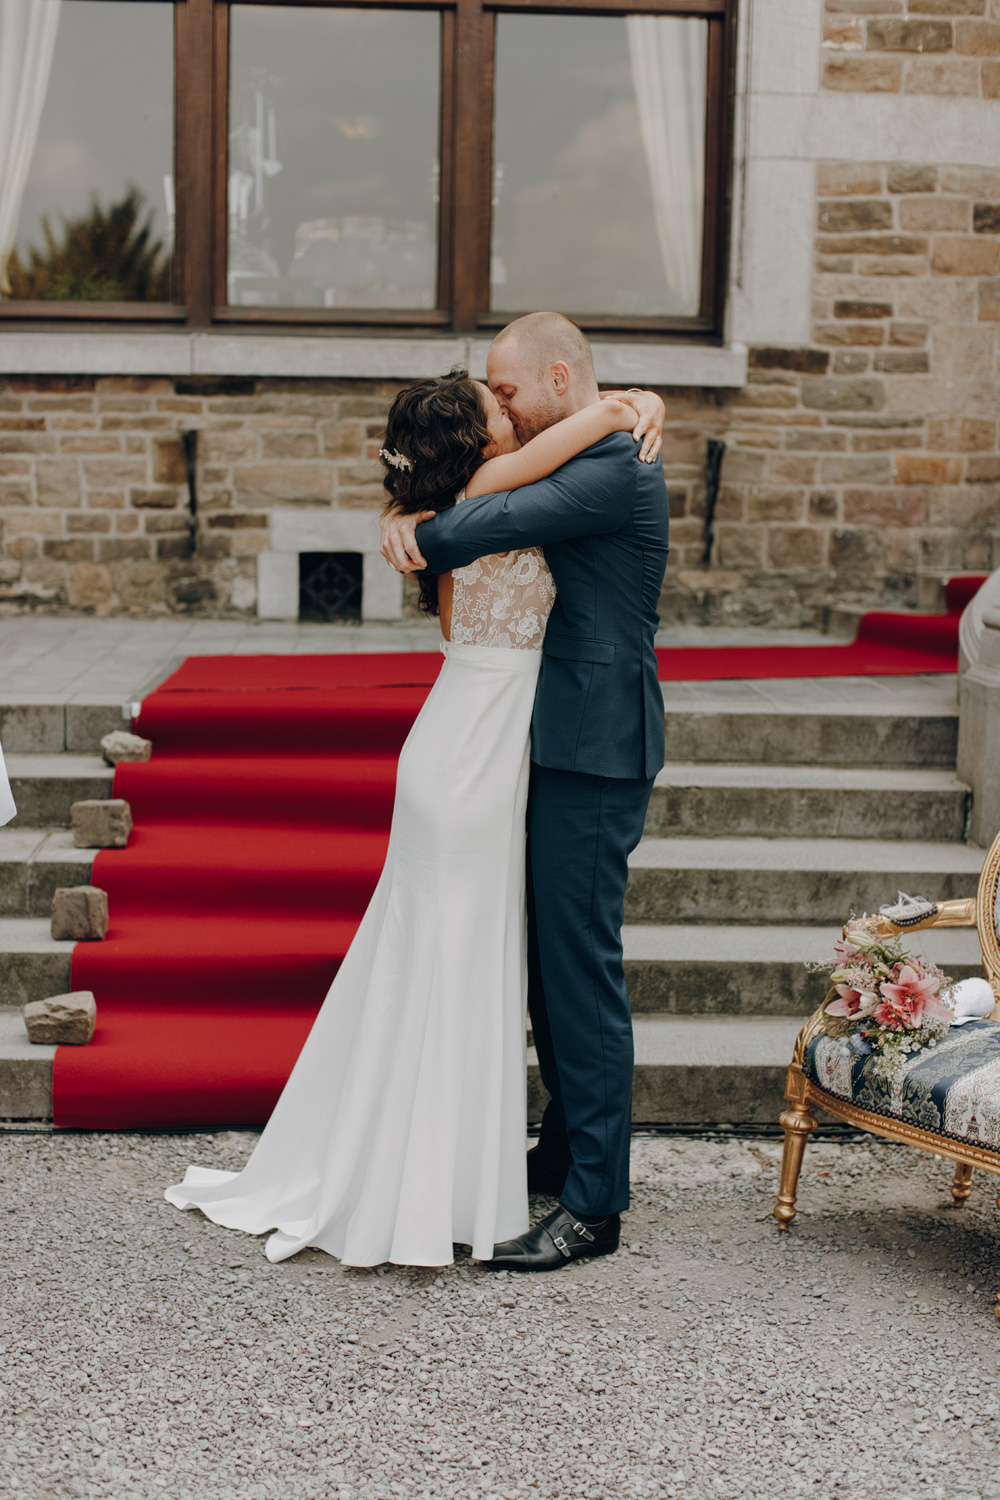 Bride and Groom married at Chateau de Presseux